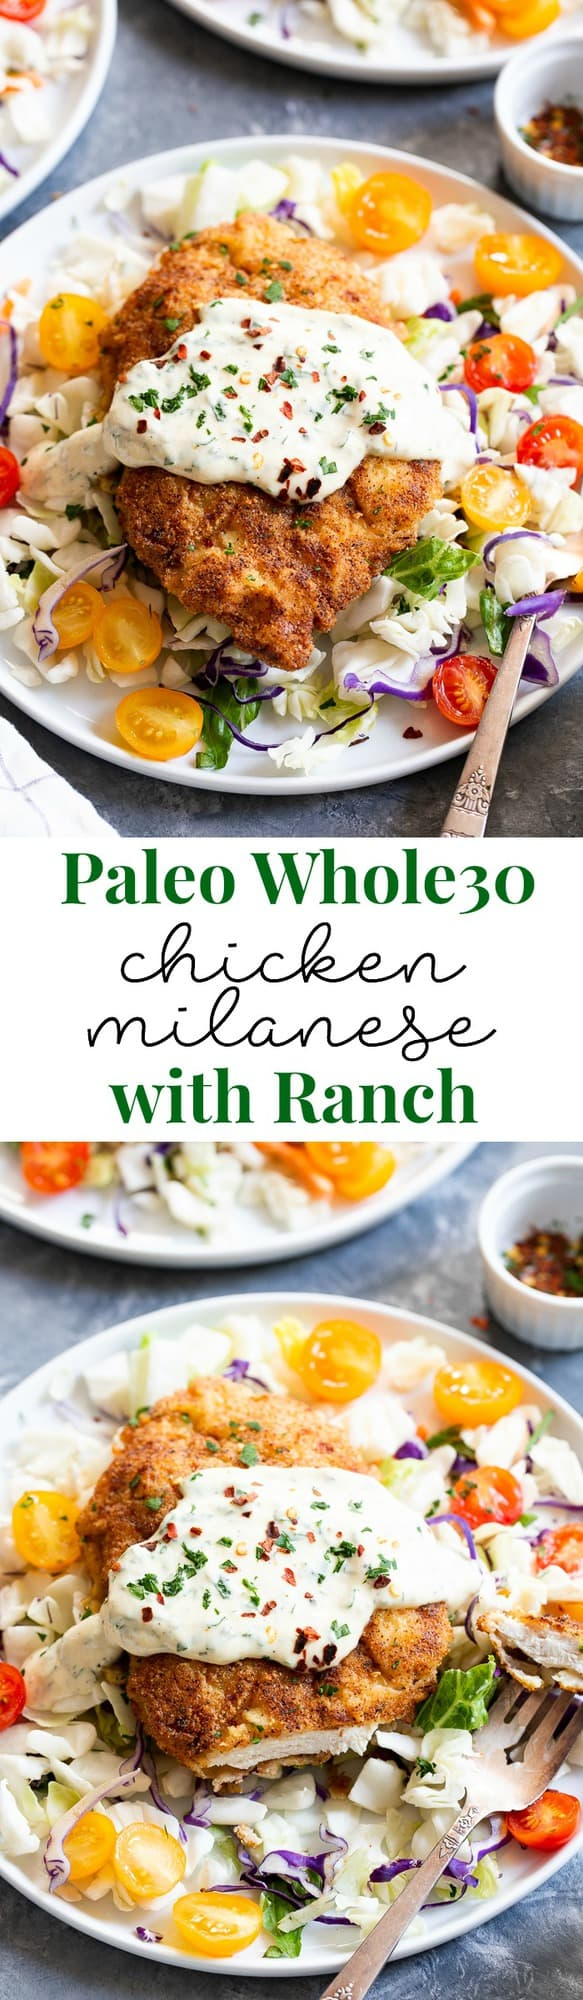 This savory crisp Paleo Chicken Milanese topped with zesty homemade ranch sauce is a quick and easy dinner you'll want on repeat!  Serve over a salad, spaghetti squash, roasted veggies, or anything you like.  It's Whole30, Keto friendly, gluten free and dairy free.